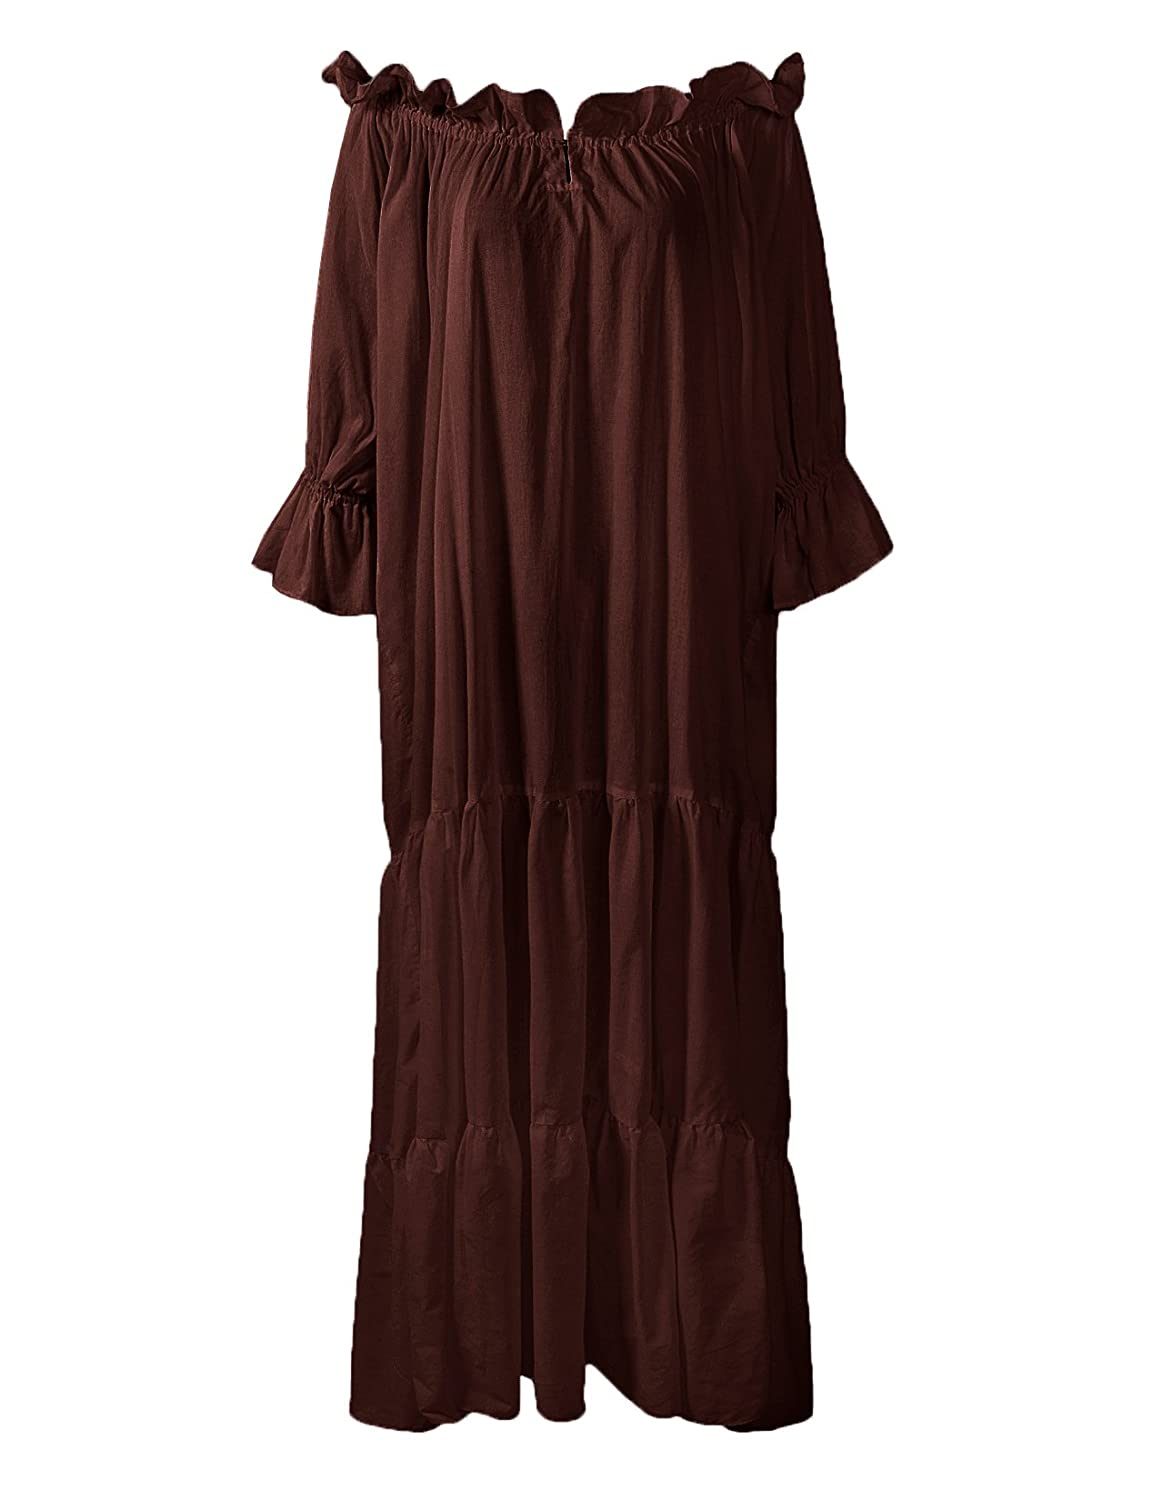 Renaissance Medieval Ruffled Tiered Sleeve Classic Brown Chemise - DeluxeAdultCostumes.com